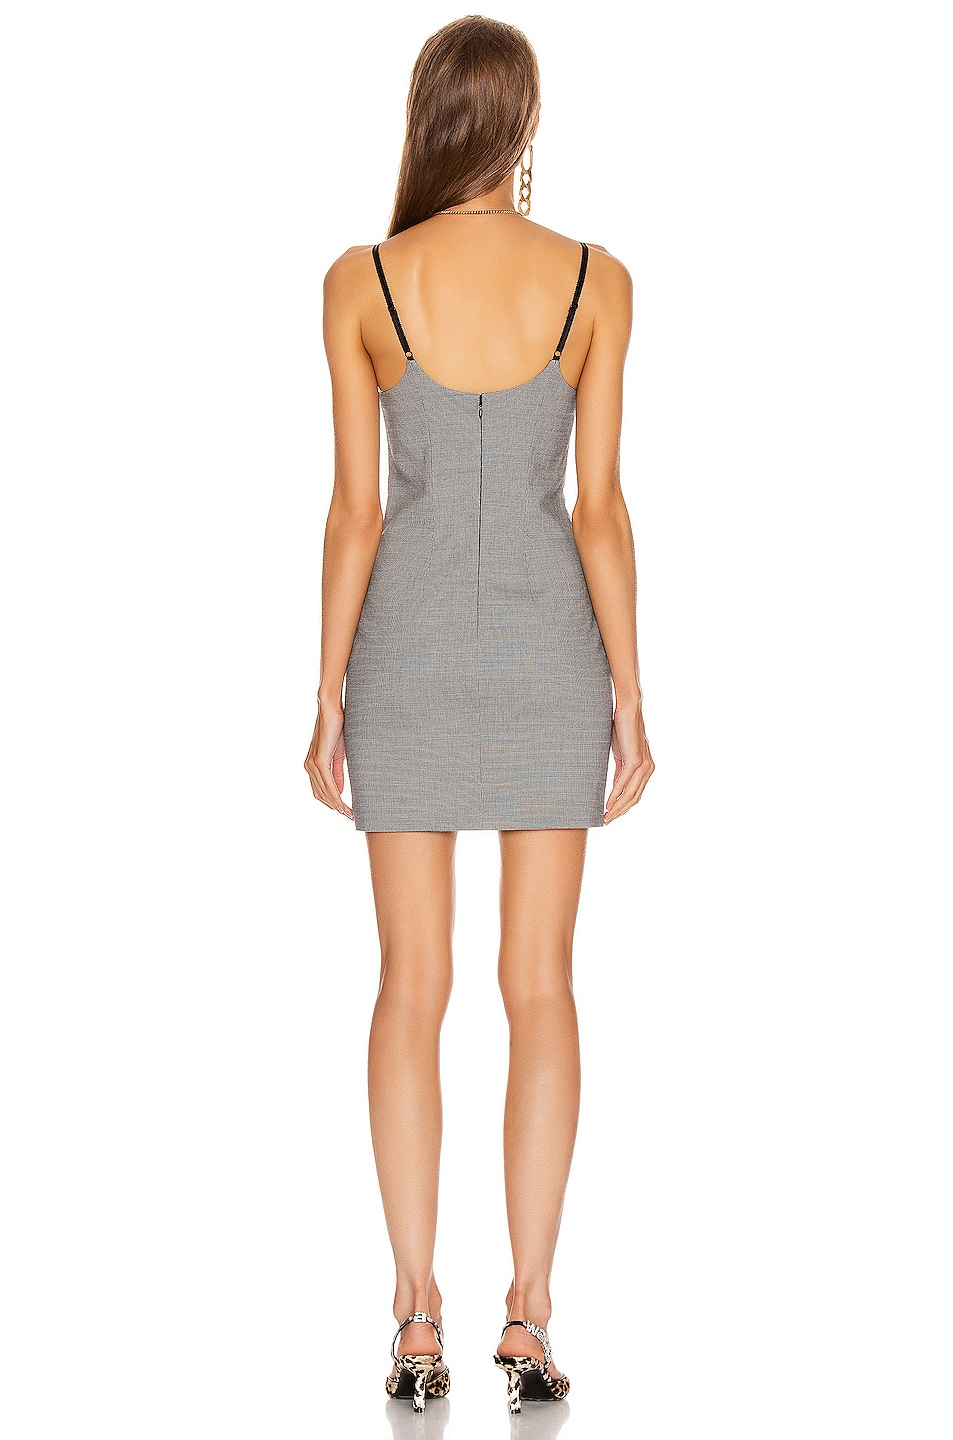 Image 3 of Alexander Wang Fitted Dress in Black & White Houndstooth